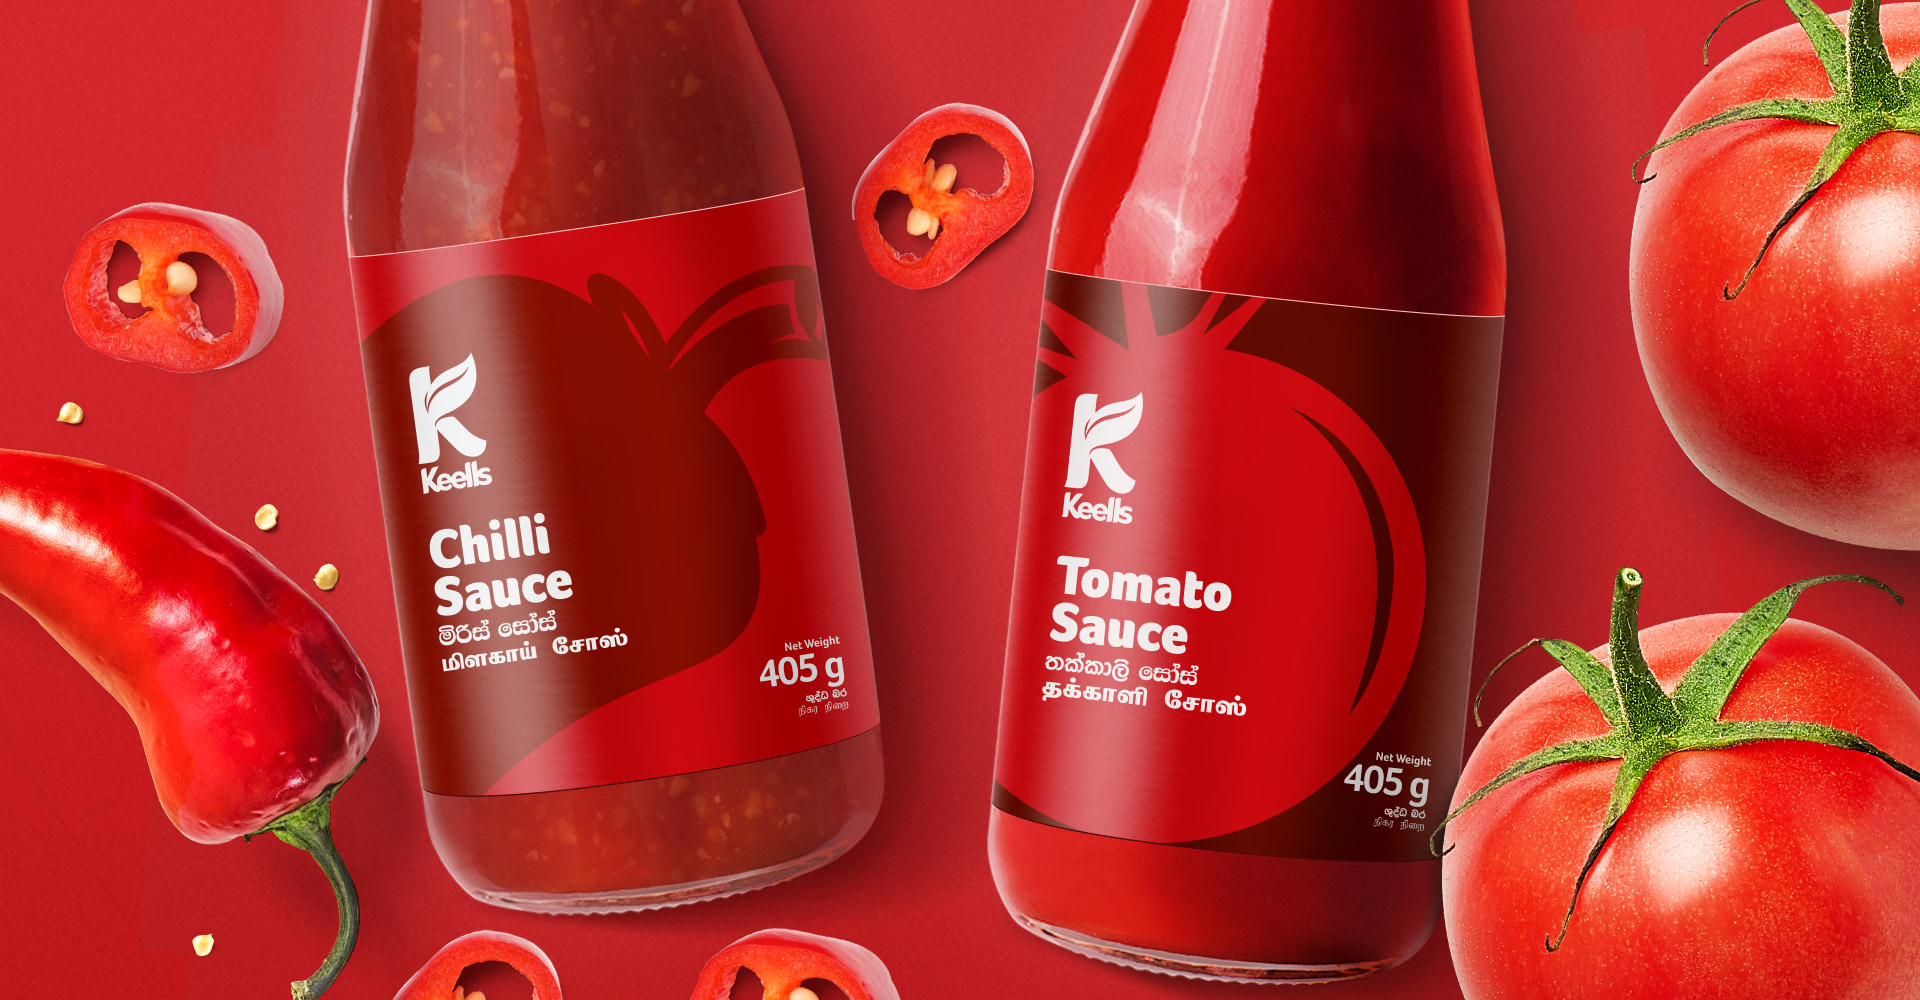 Keells tomato sauce bottle